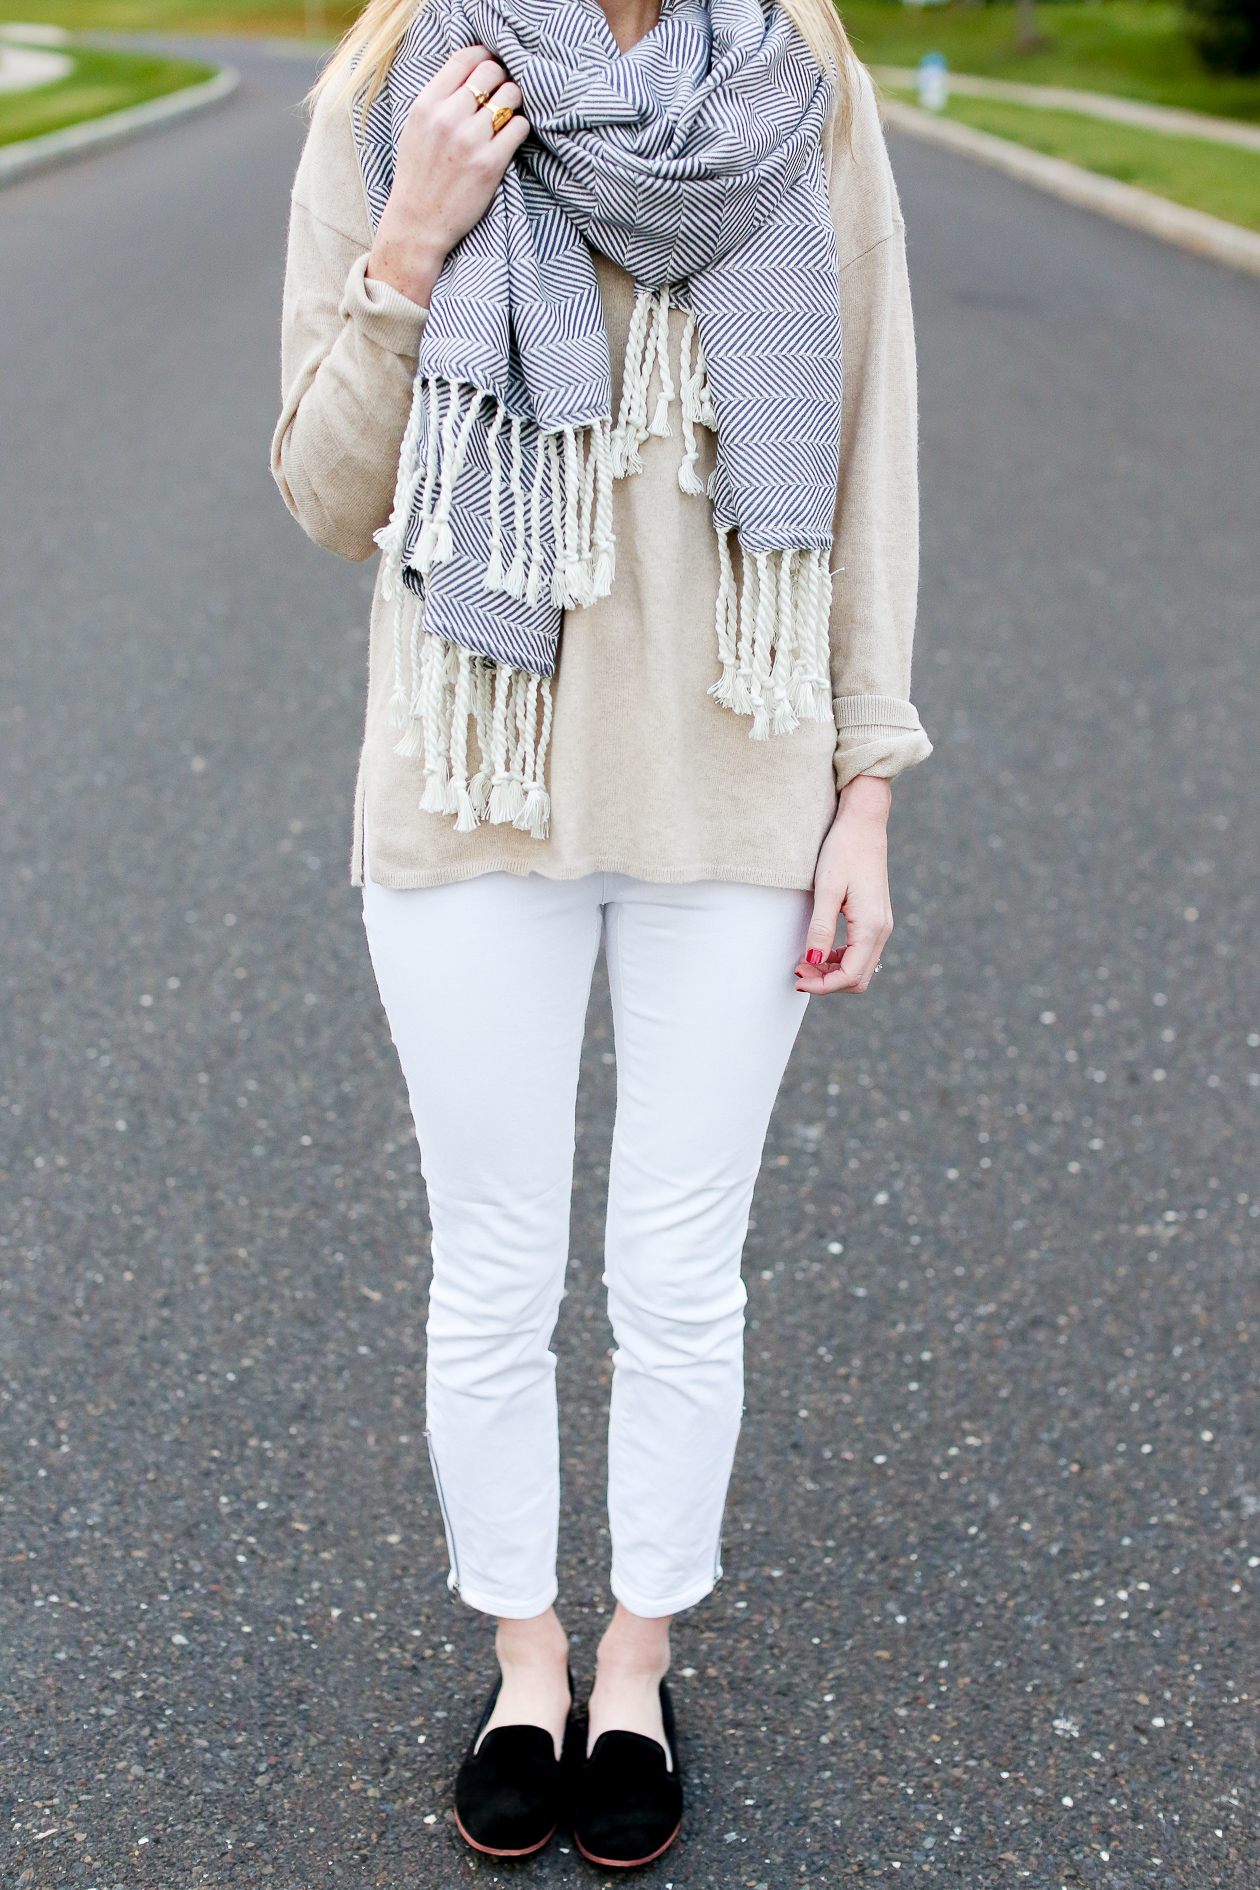 Madewell White Jeans-21